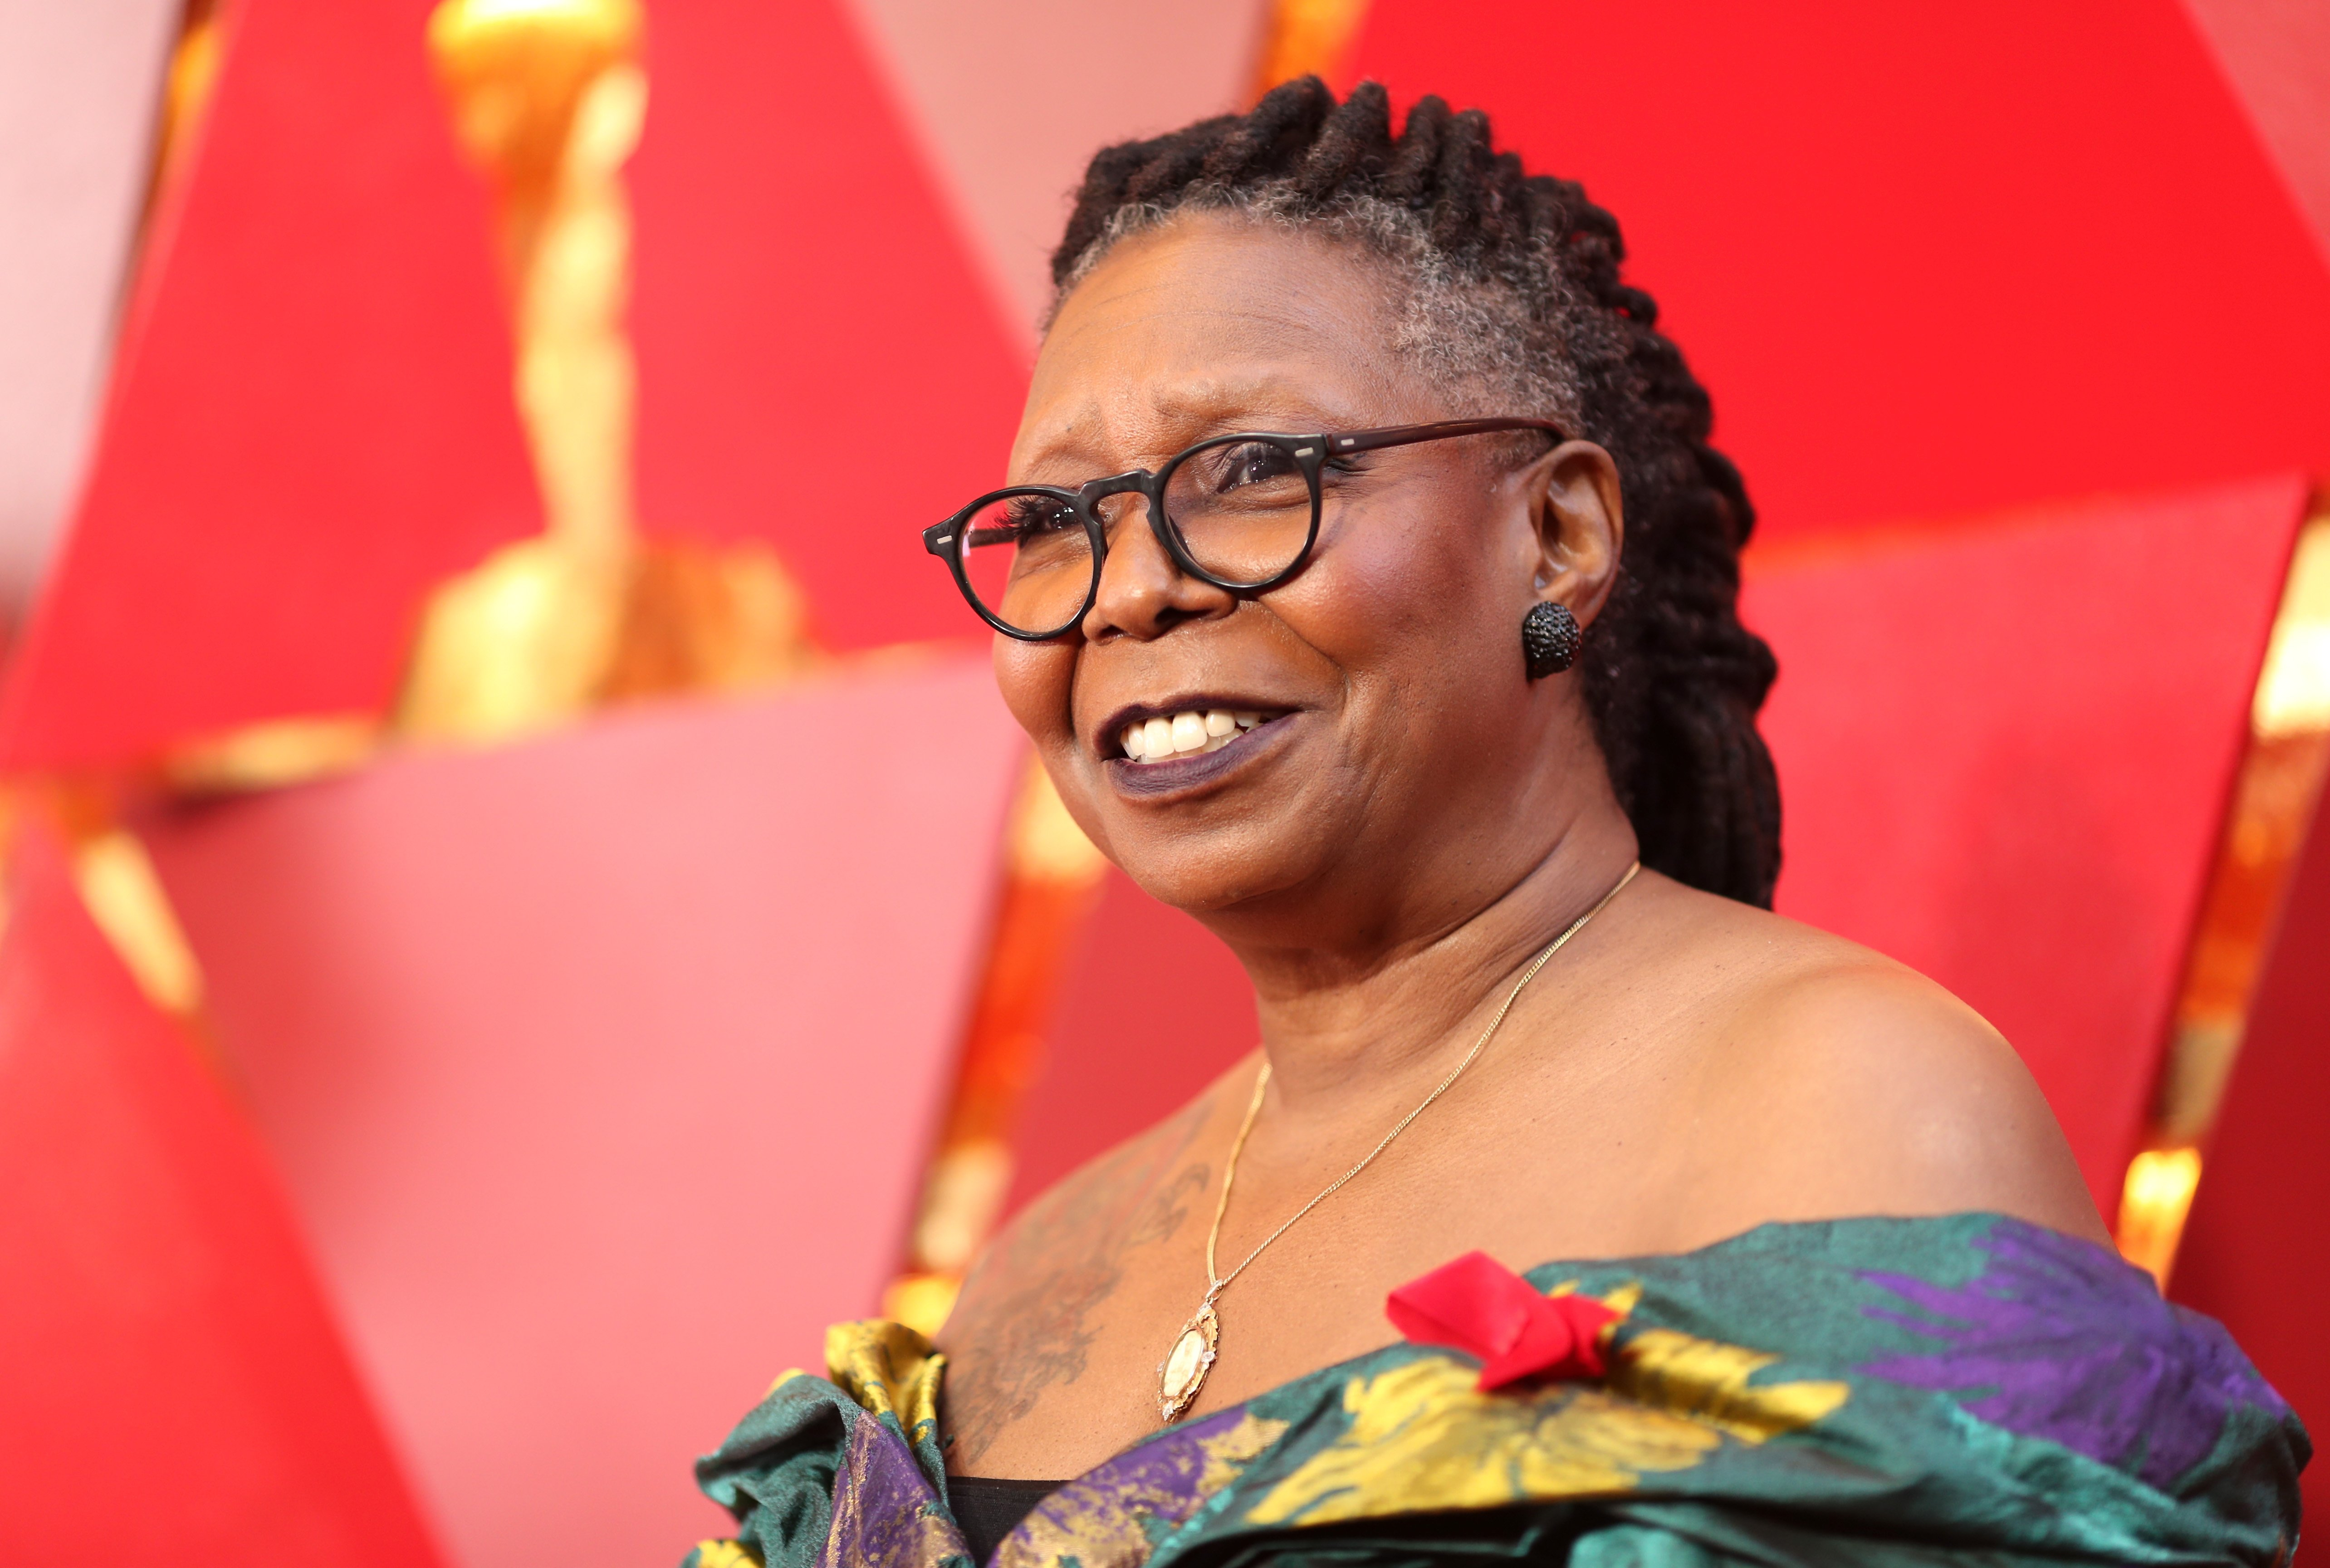 Whoopi Goldberg attends the 90th Annual Academy Awards at Hollywood & Highland Center on March 4, 2018. | Photo: Getty Images